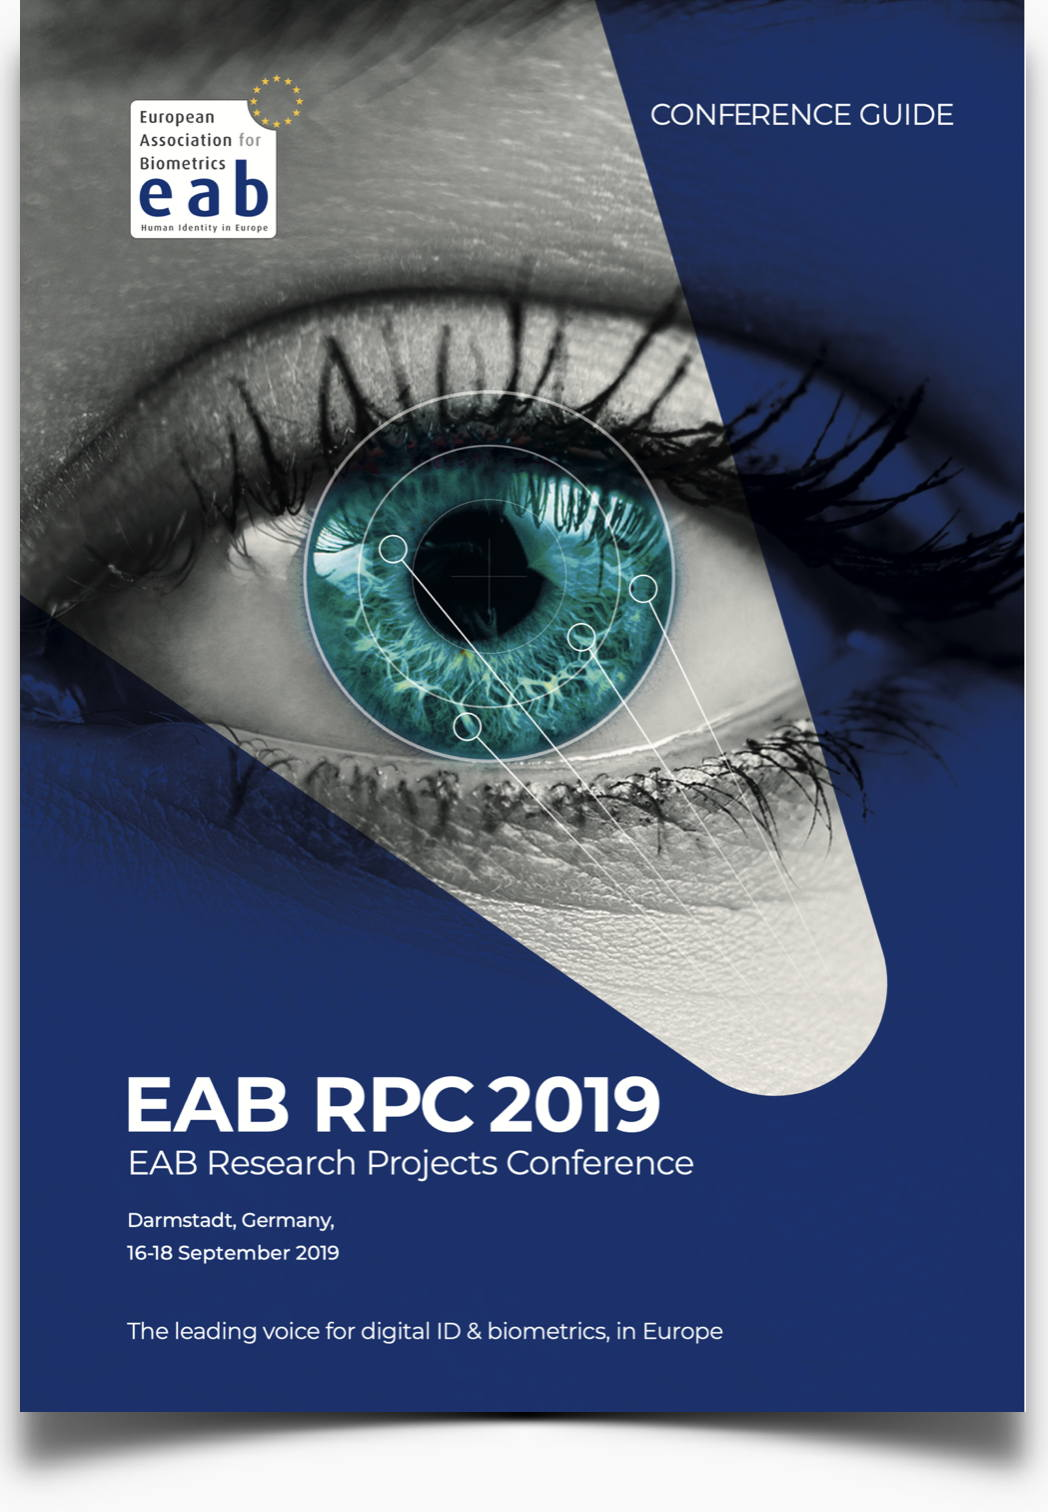 [Banner] EAB-RPC 2019 Conference Report